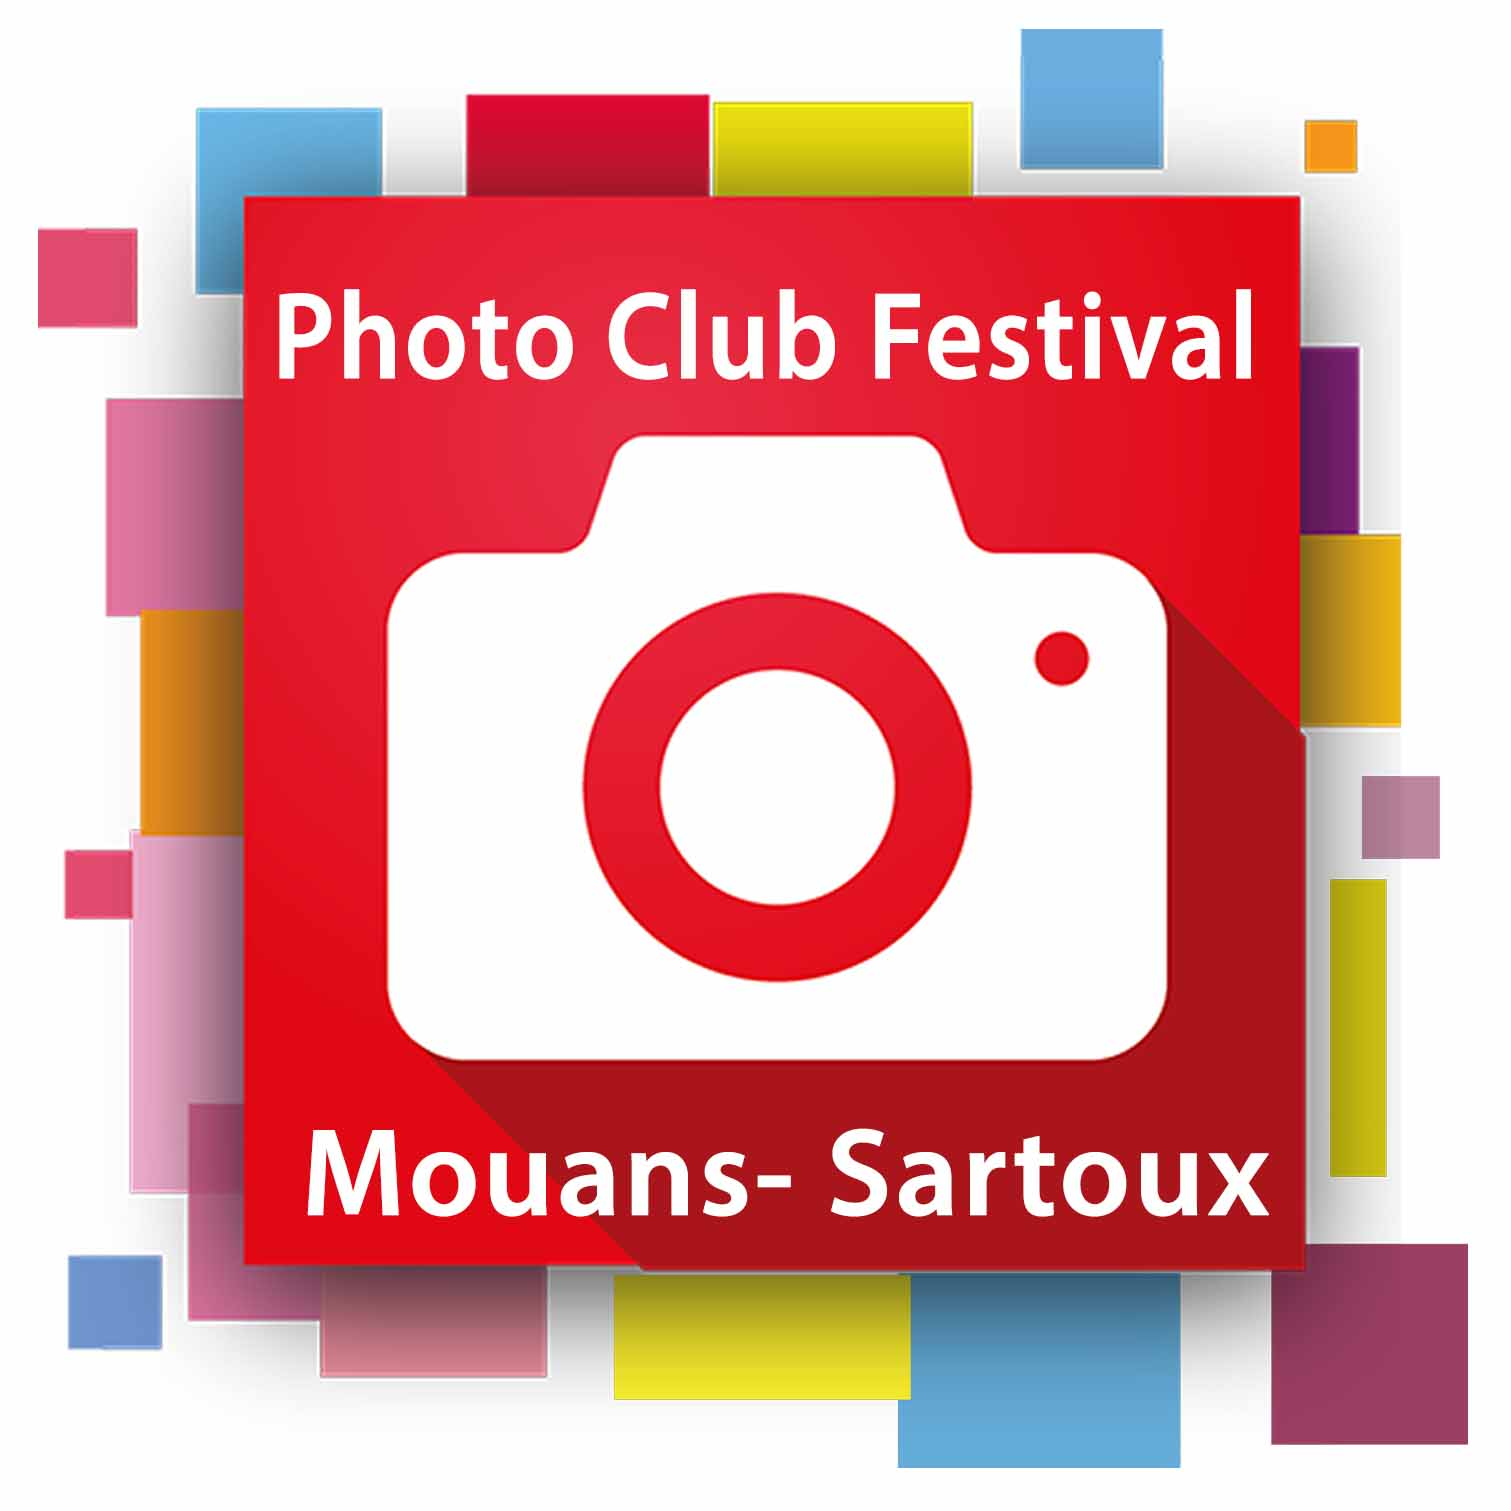 Photo-club-festival-Mouans-Sartoux